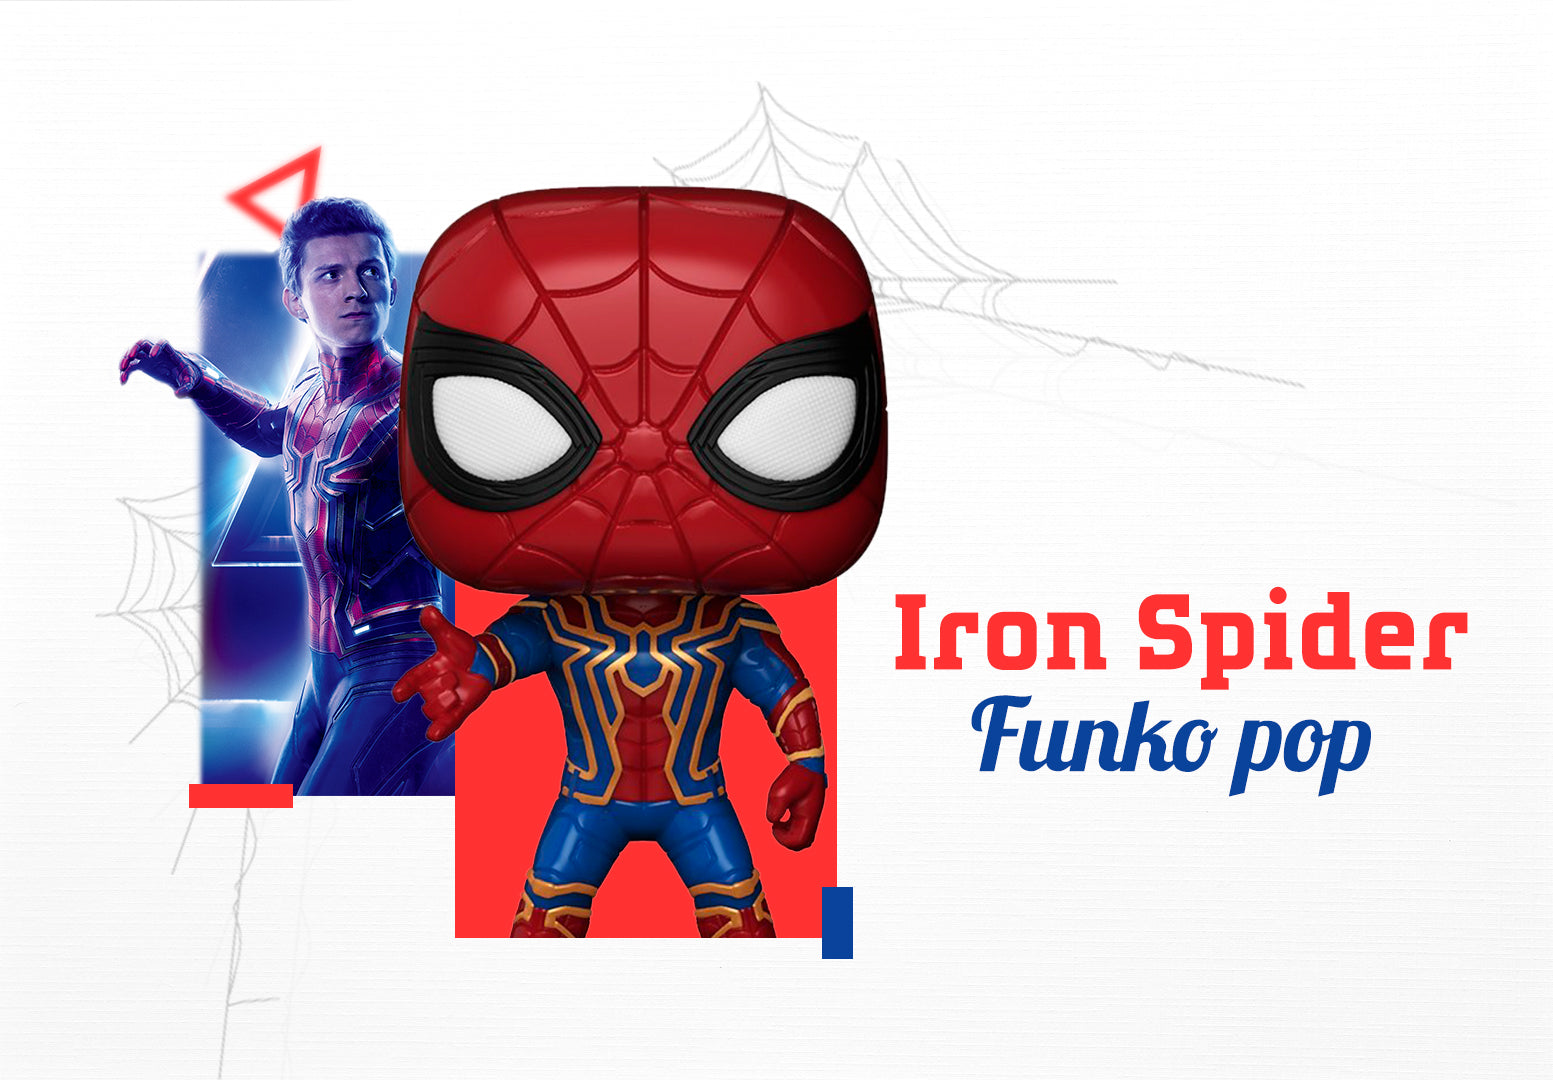 Funko pop Iron Spider: Avengers Infinity War